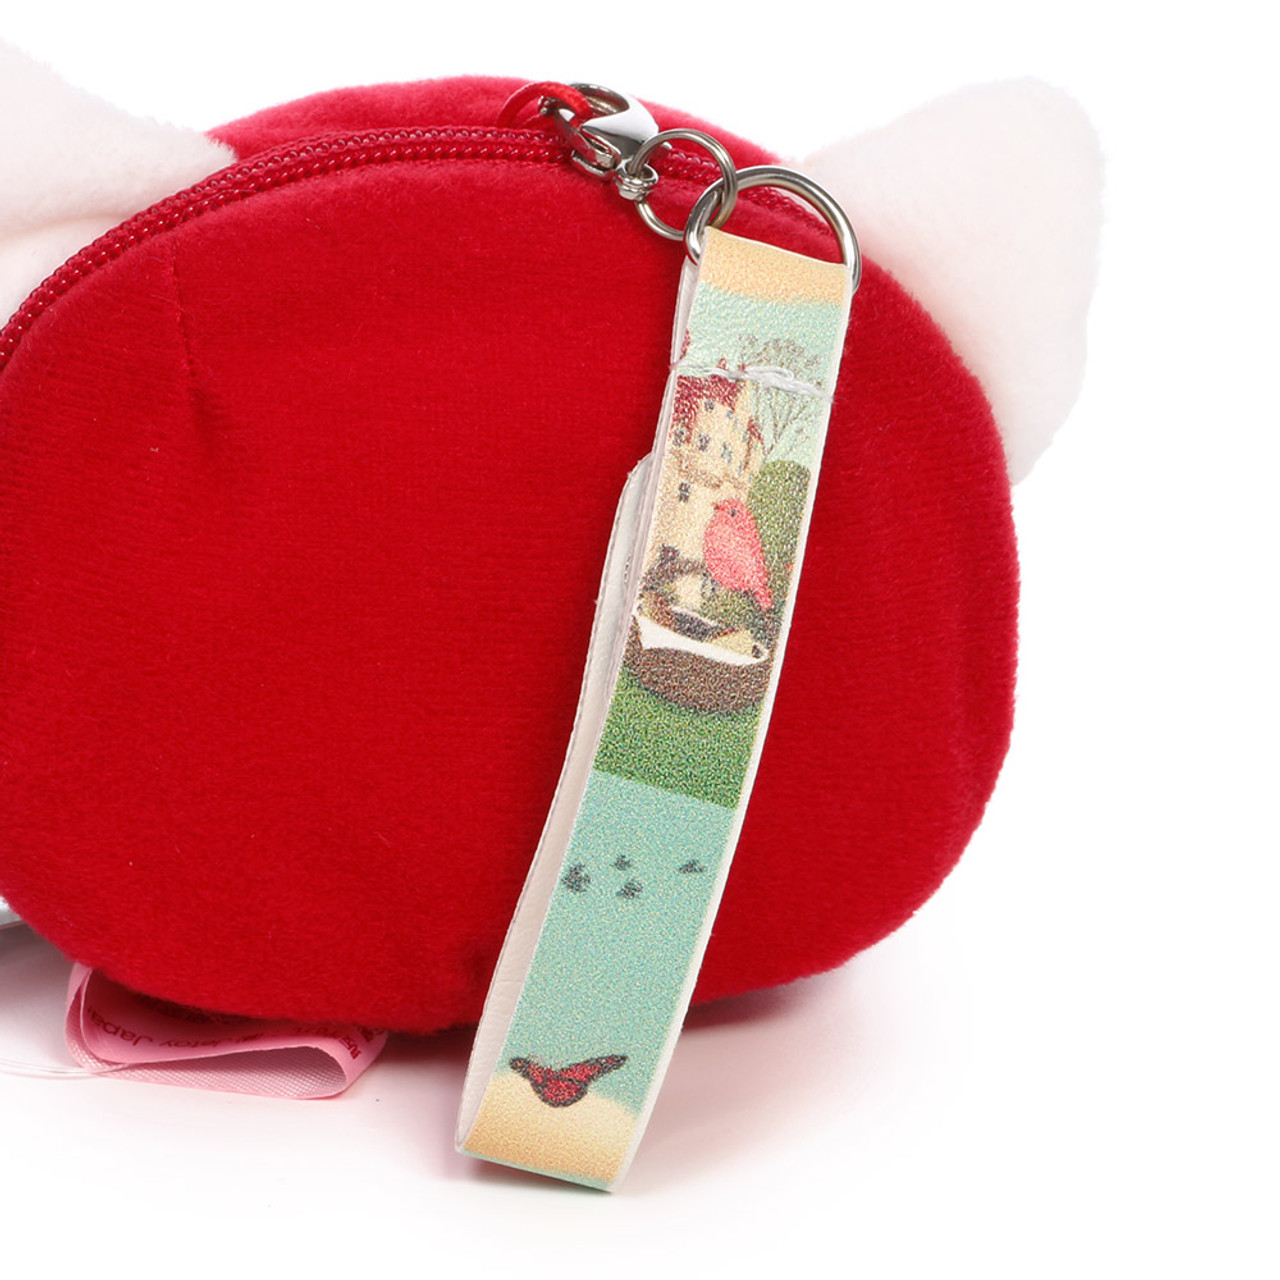 Choo Choo Cat Mini Coin Pouch - Little Red Riding Hood ( Synthetic Leather Hand Strap )